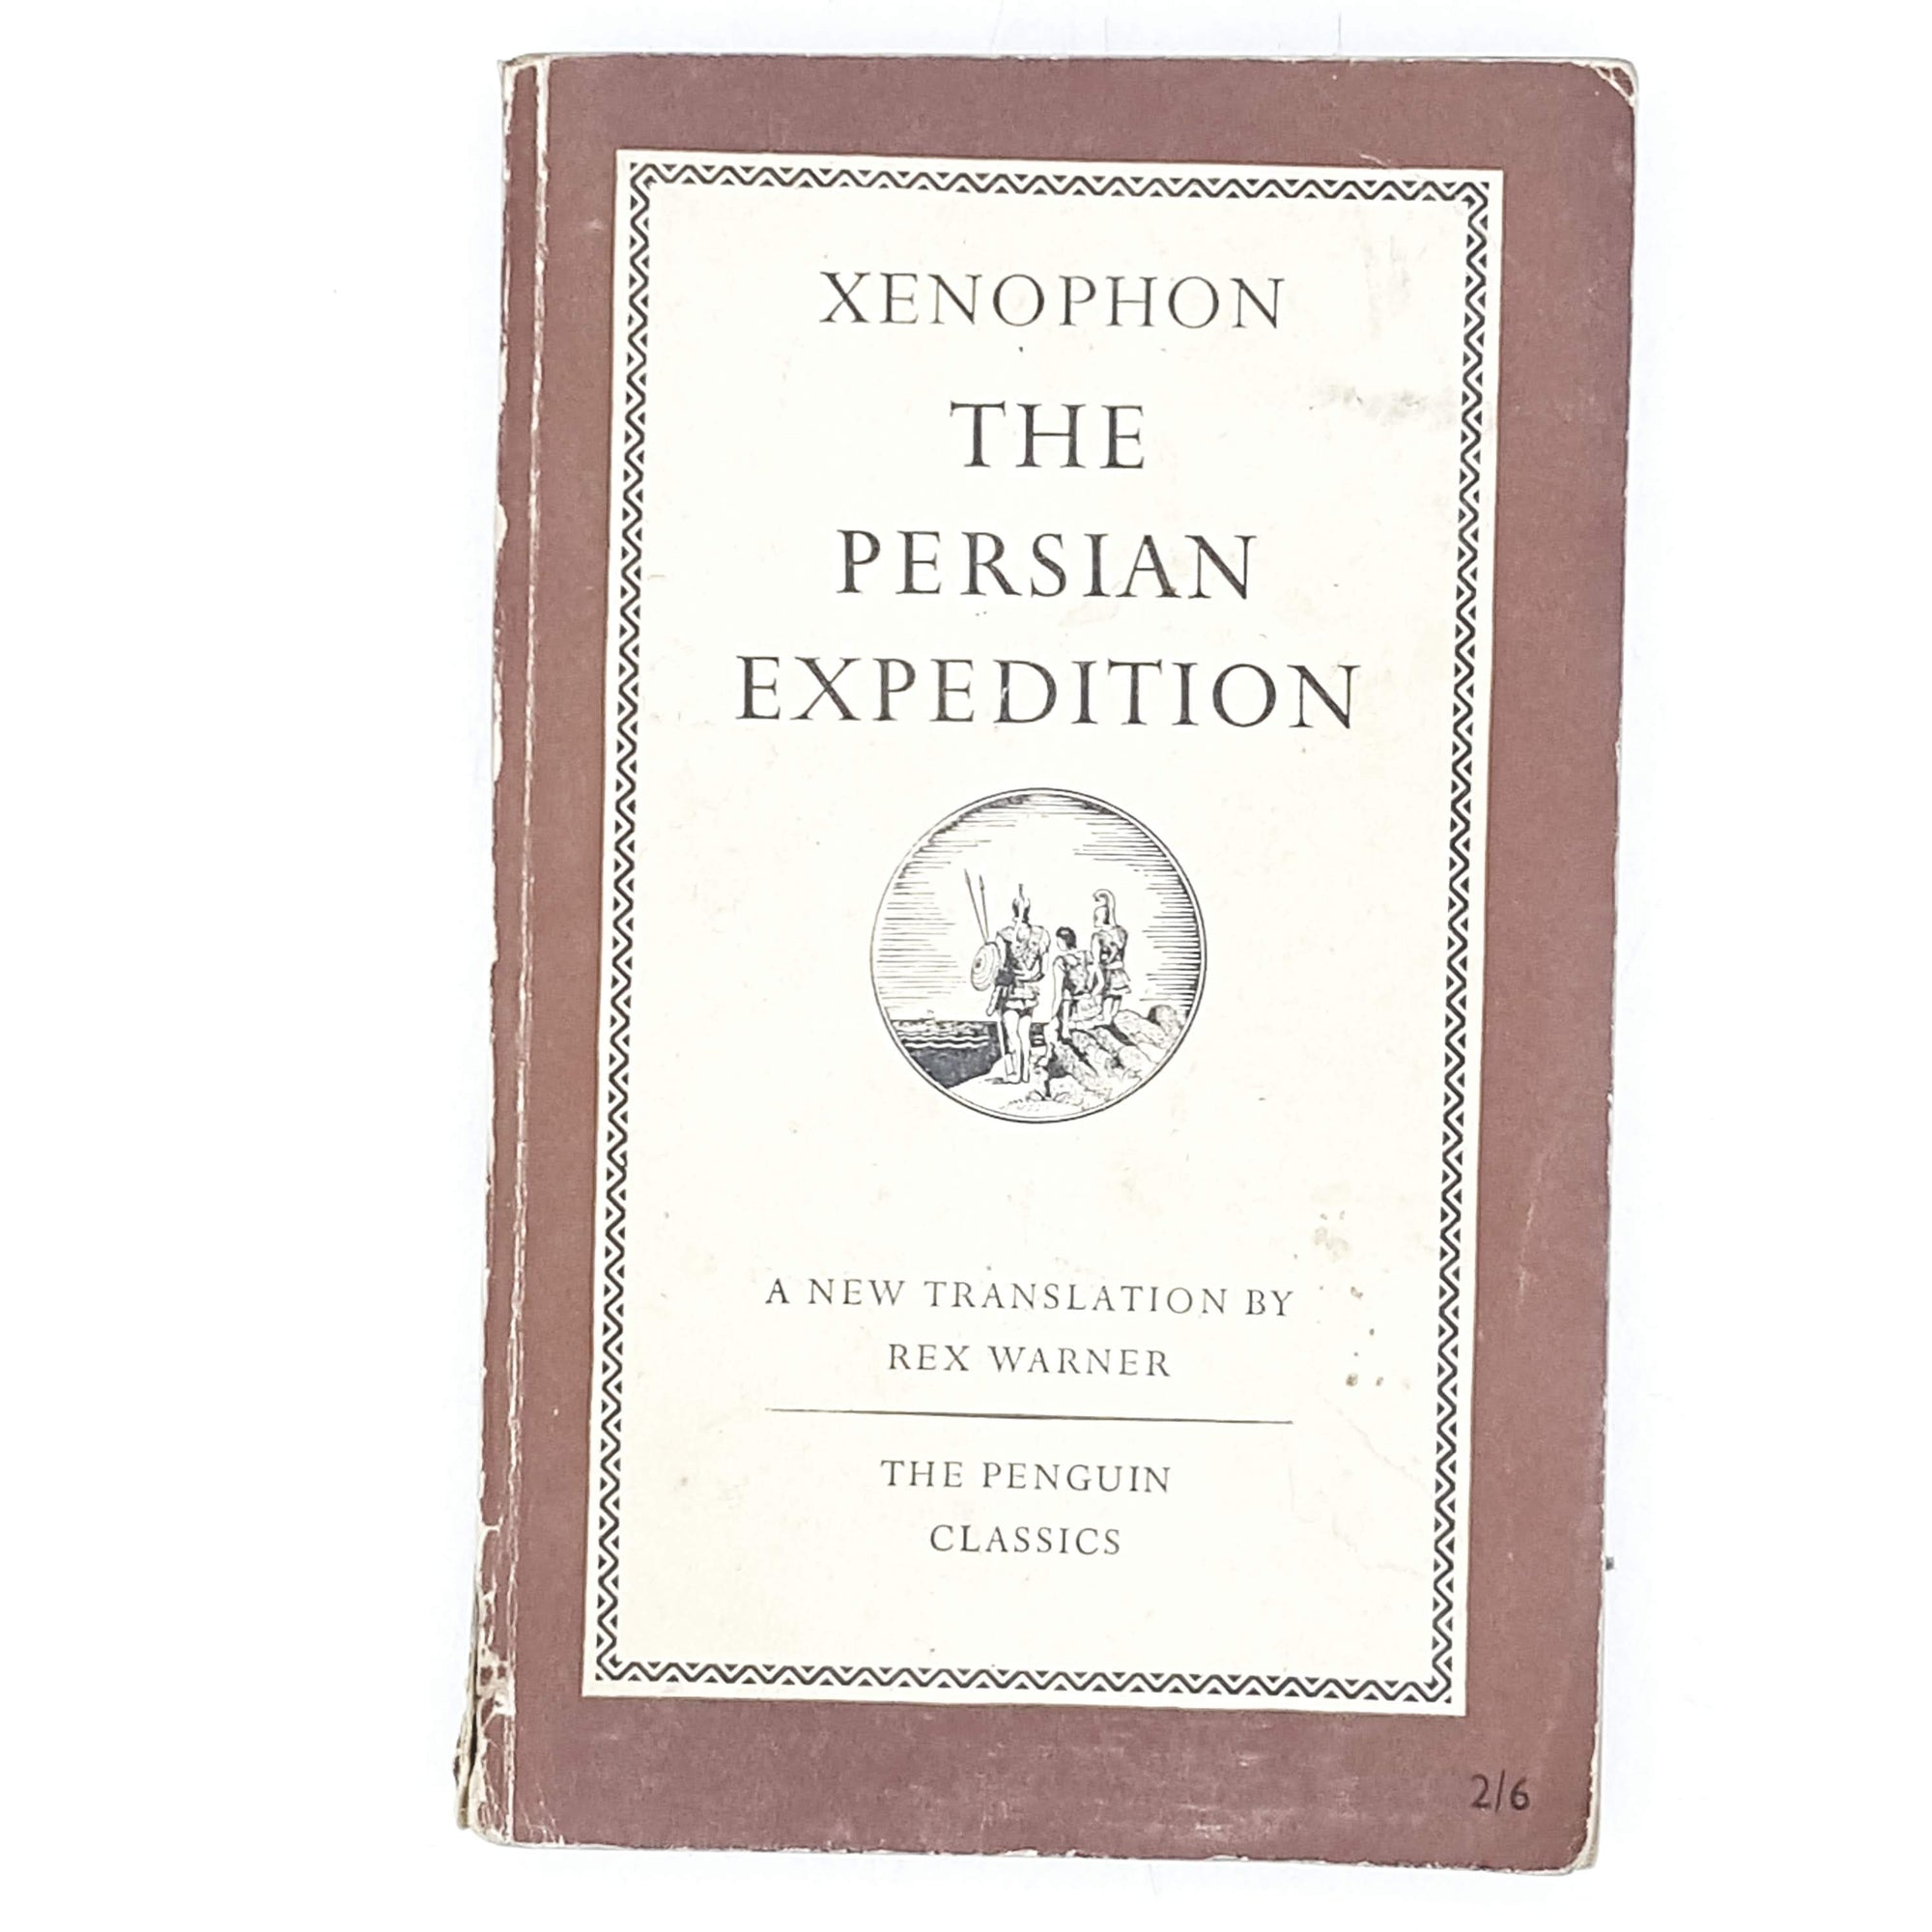 Vintage Penguin: The Persian Expedition by Xenophon 1952